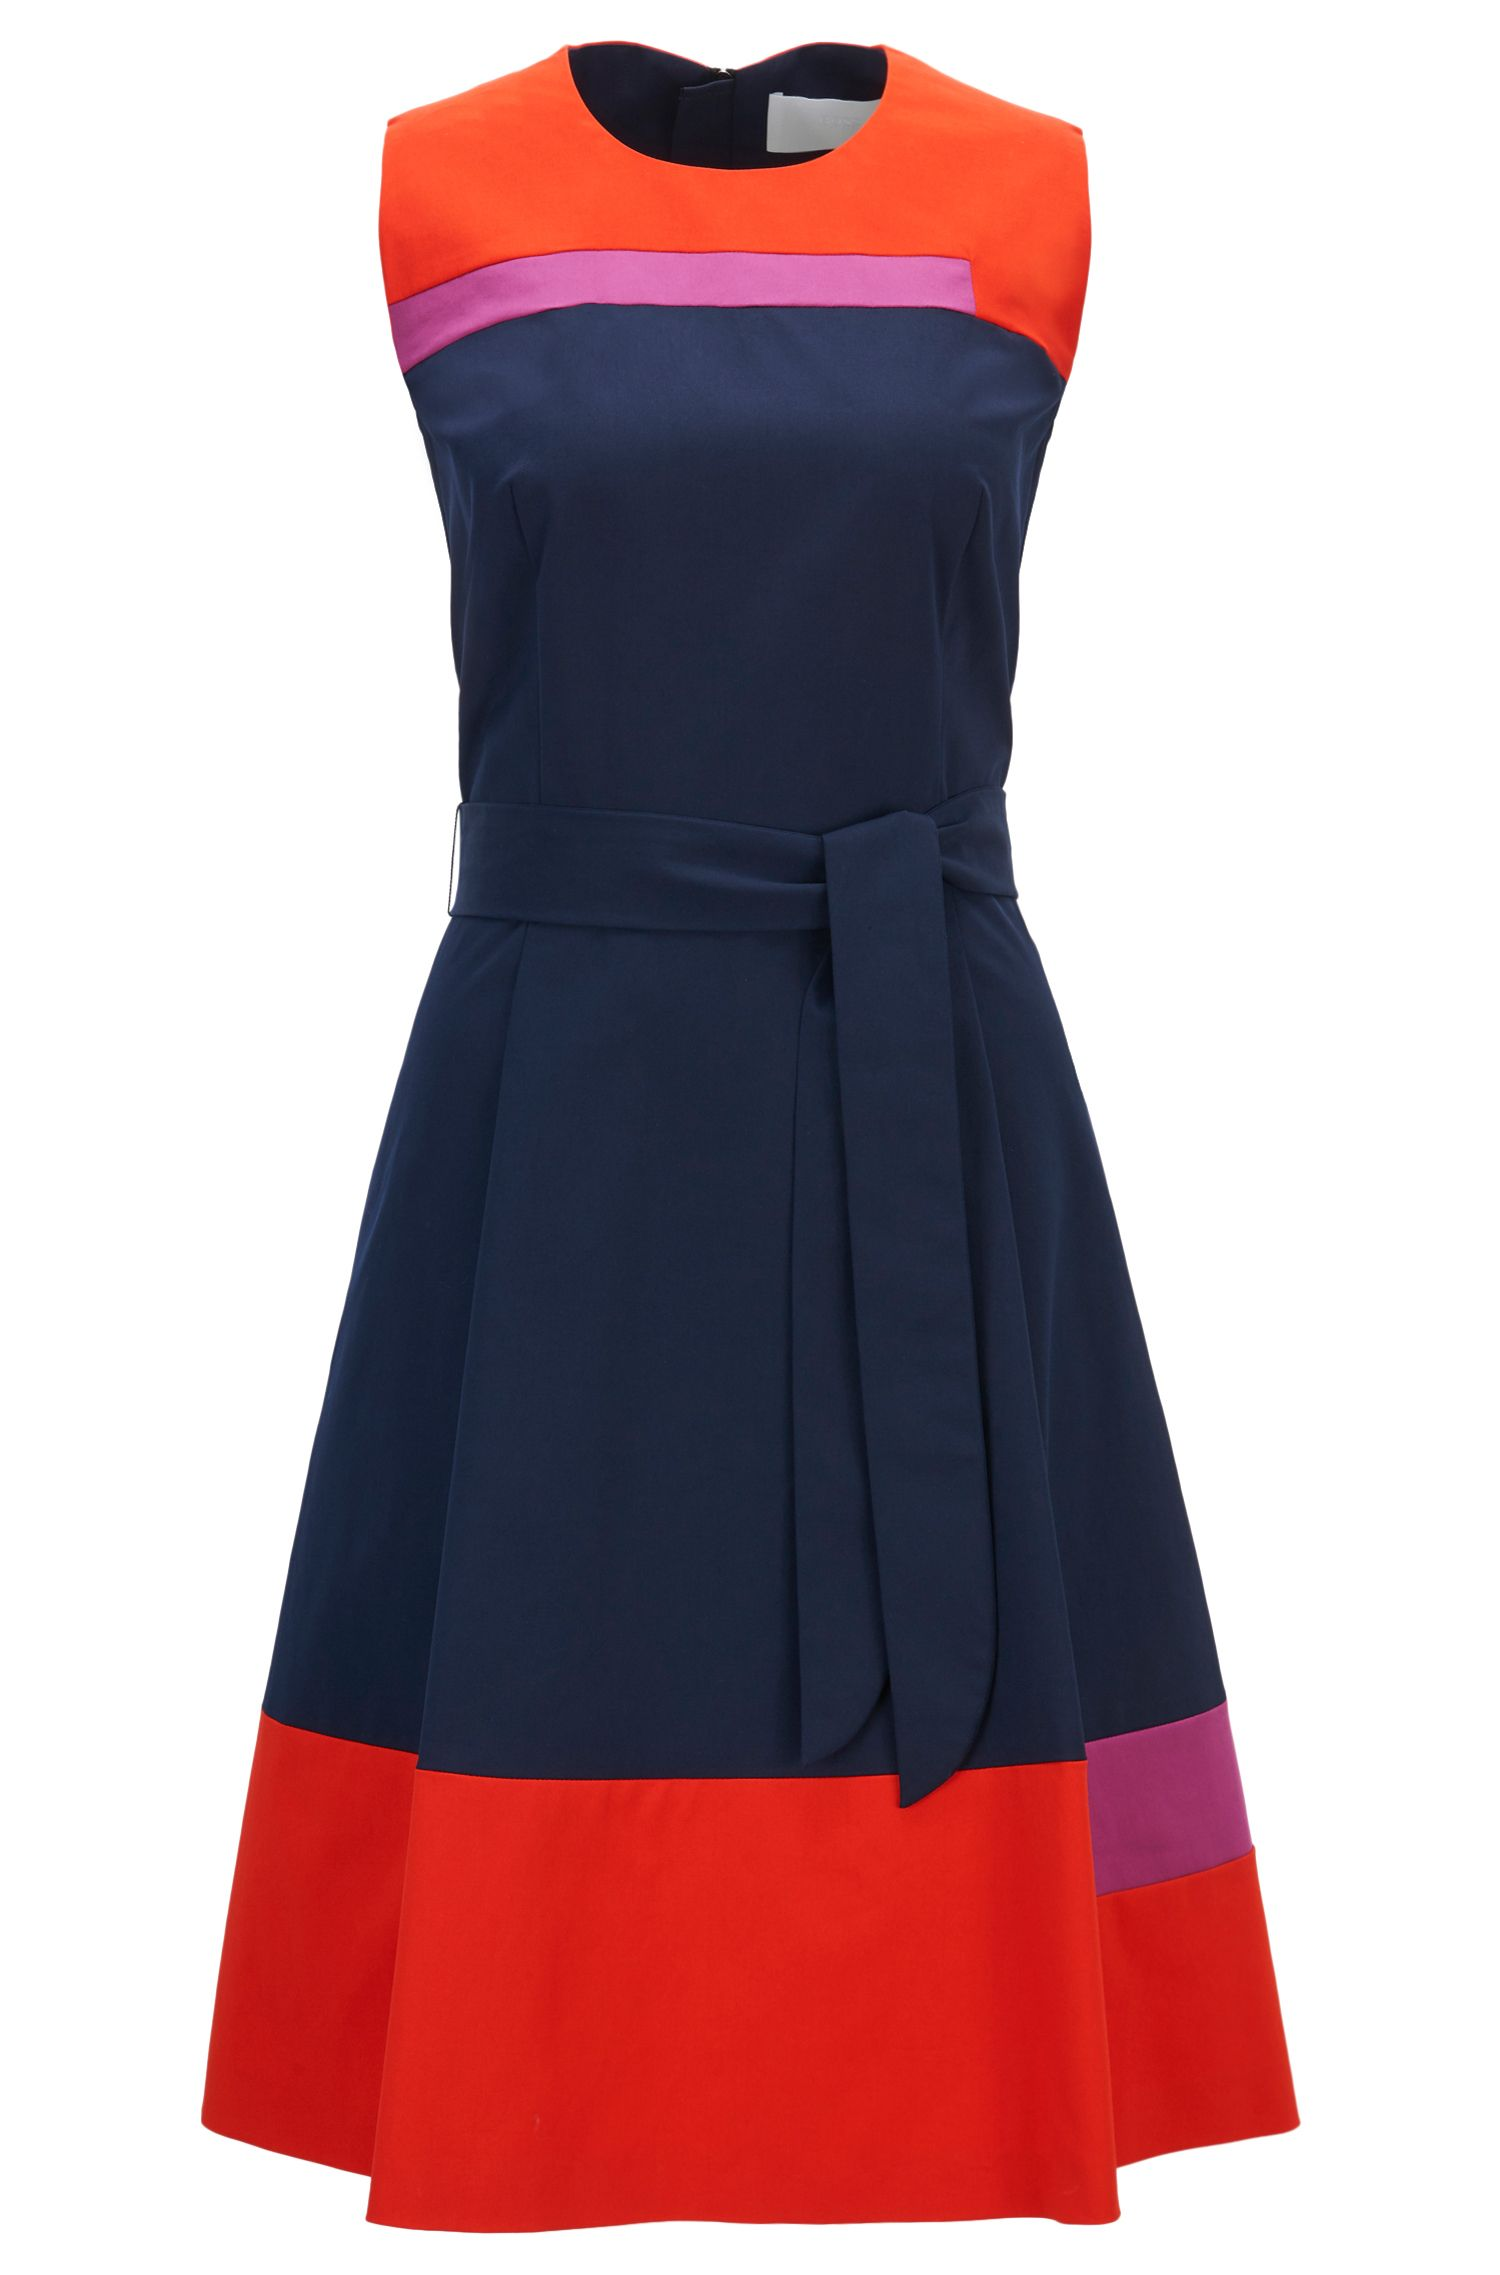 Robe color block sans manches en twill de coton stretch